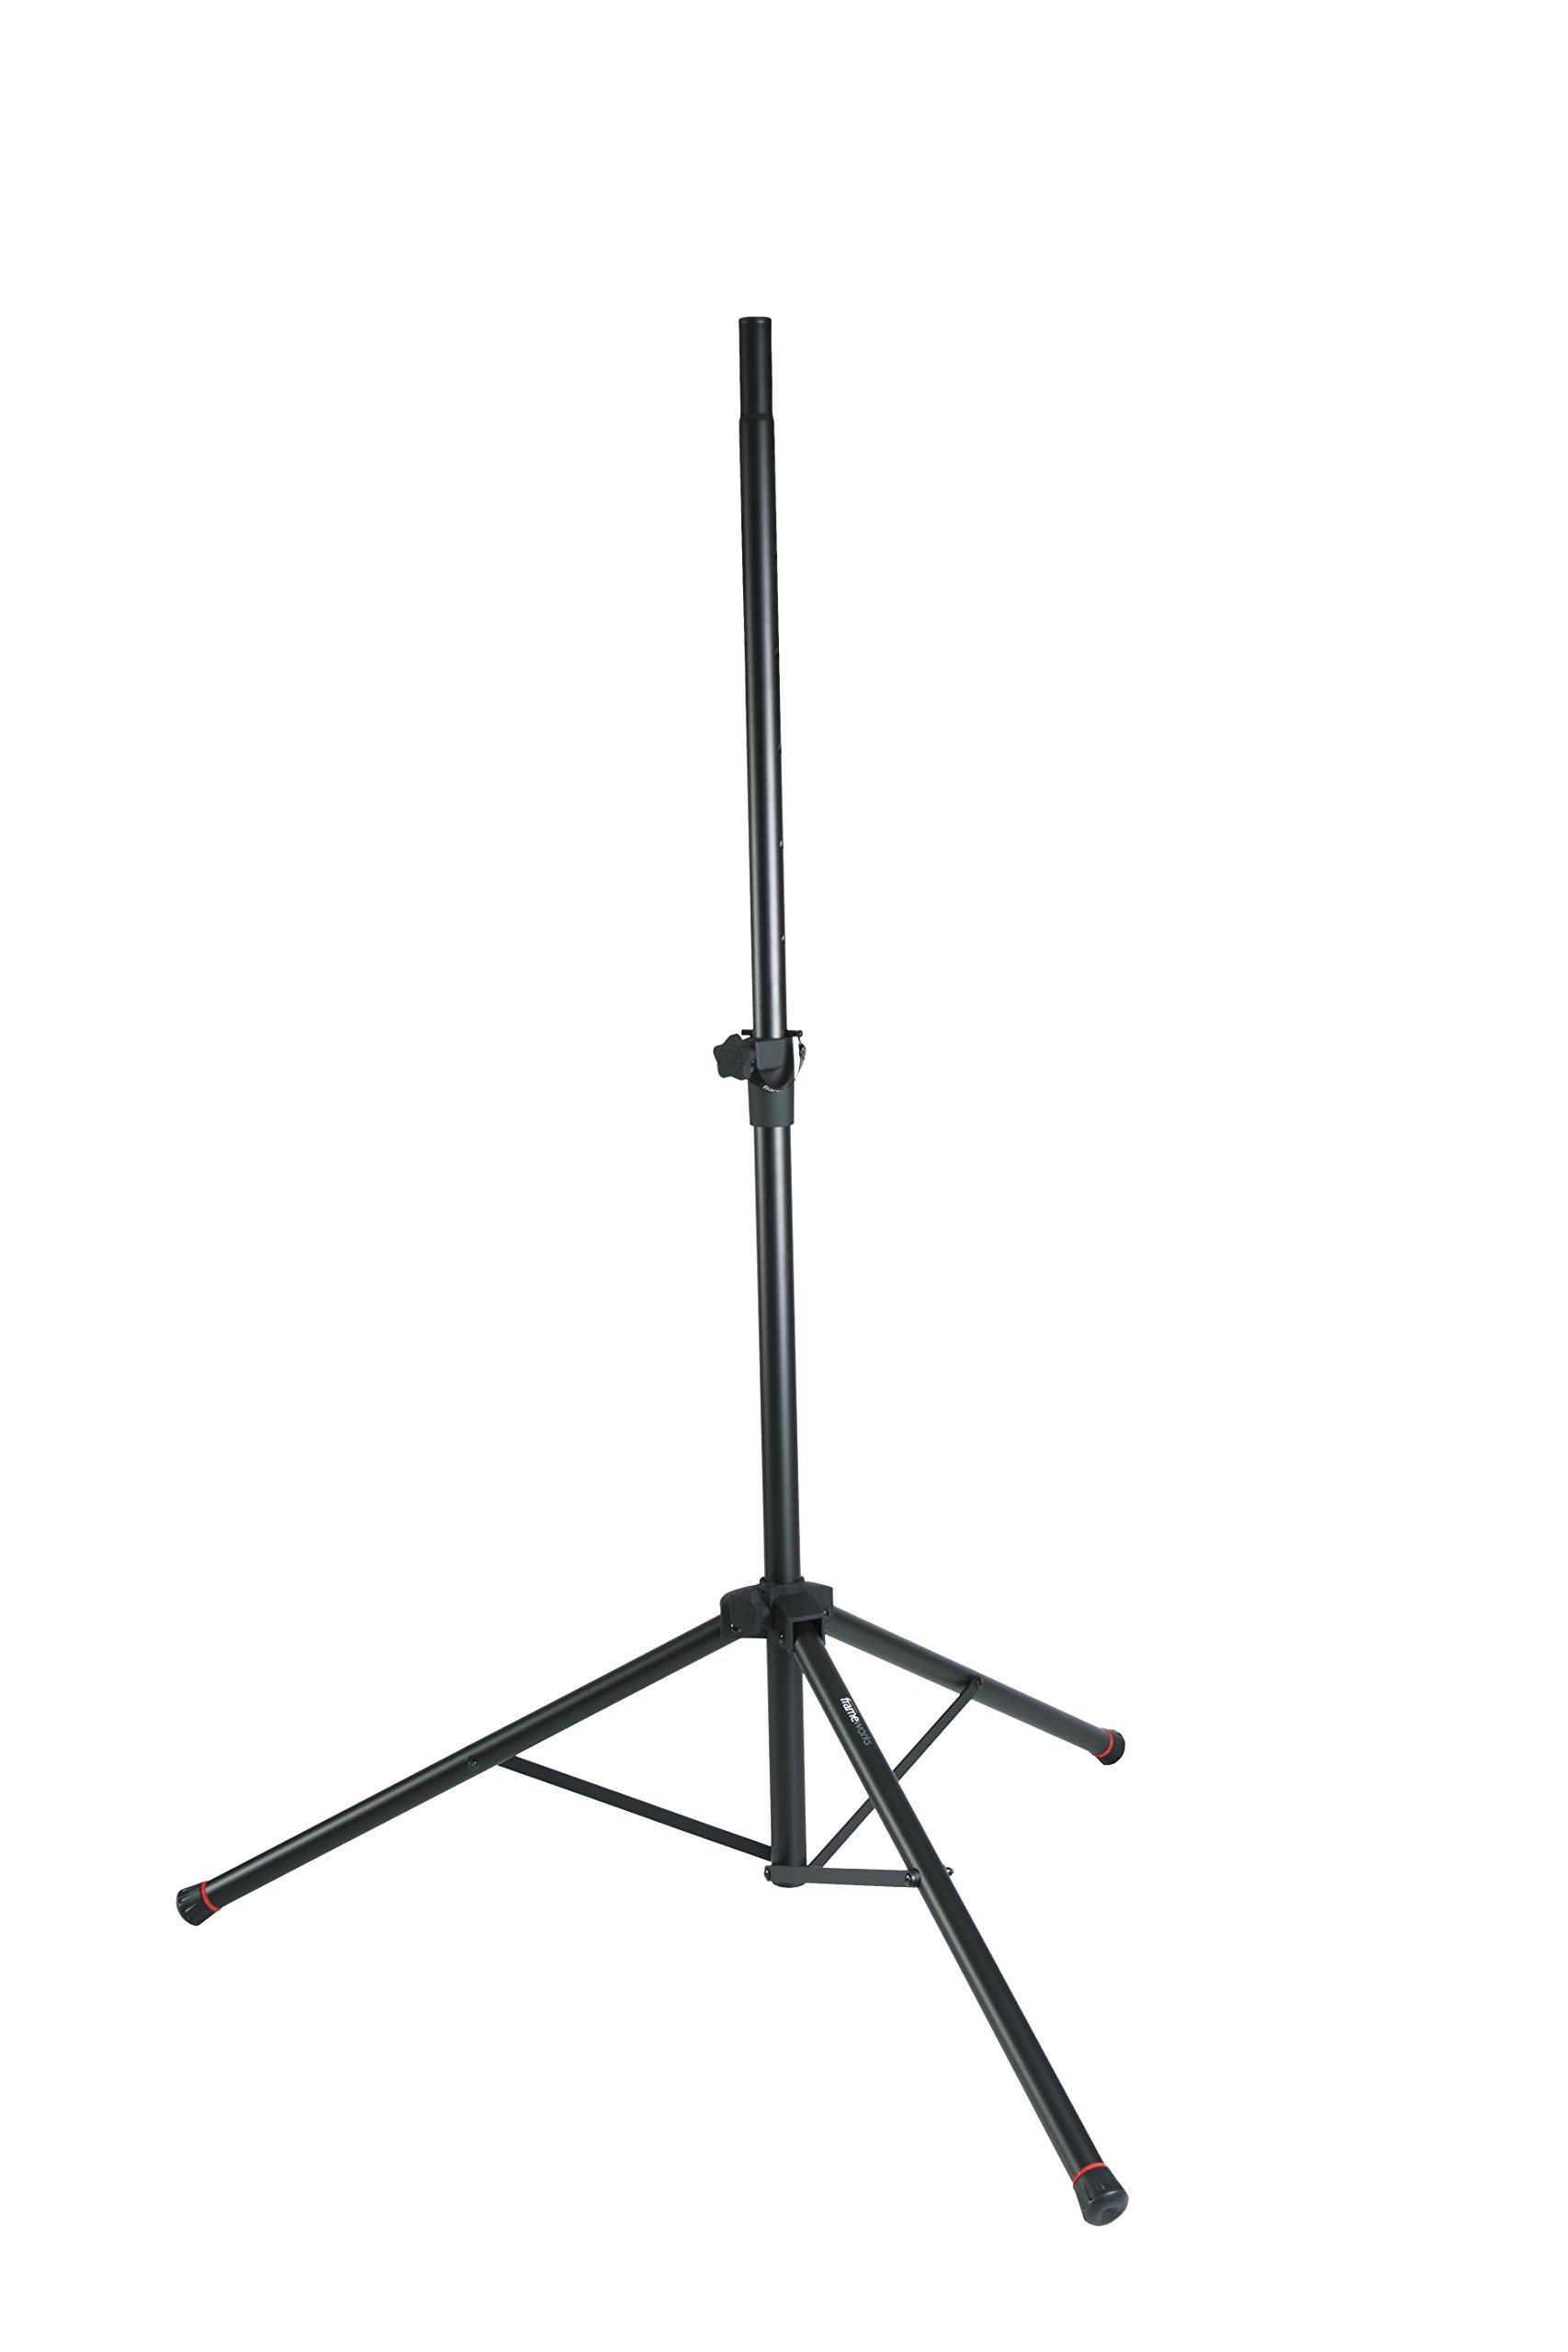 Gator Frameworks Standard Speaker Stand with Adjustable Height (GFW-SPK-2000)